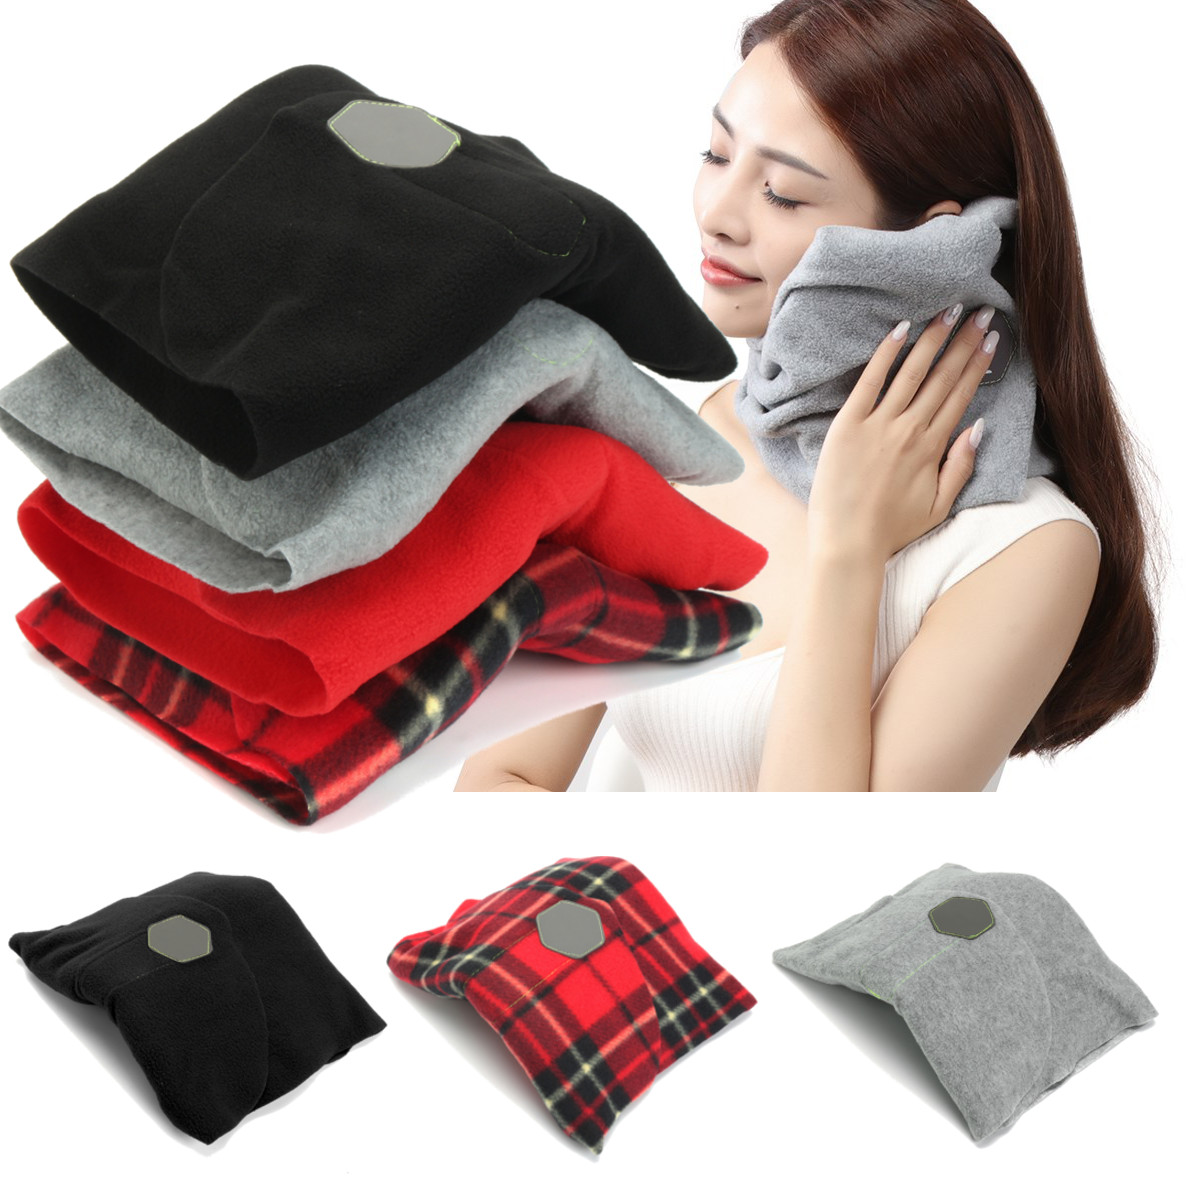 Outdoor Travel Super Soft Neck Support Portable Aircraft Car Train Pillow Office Neck Rest